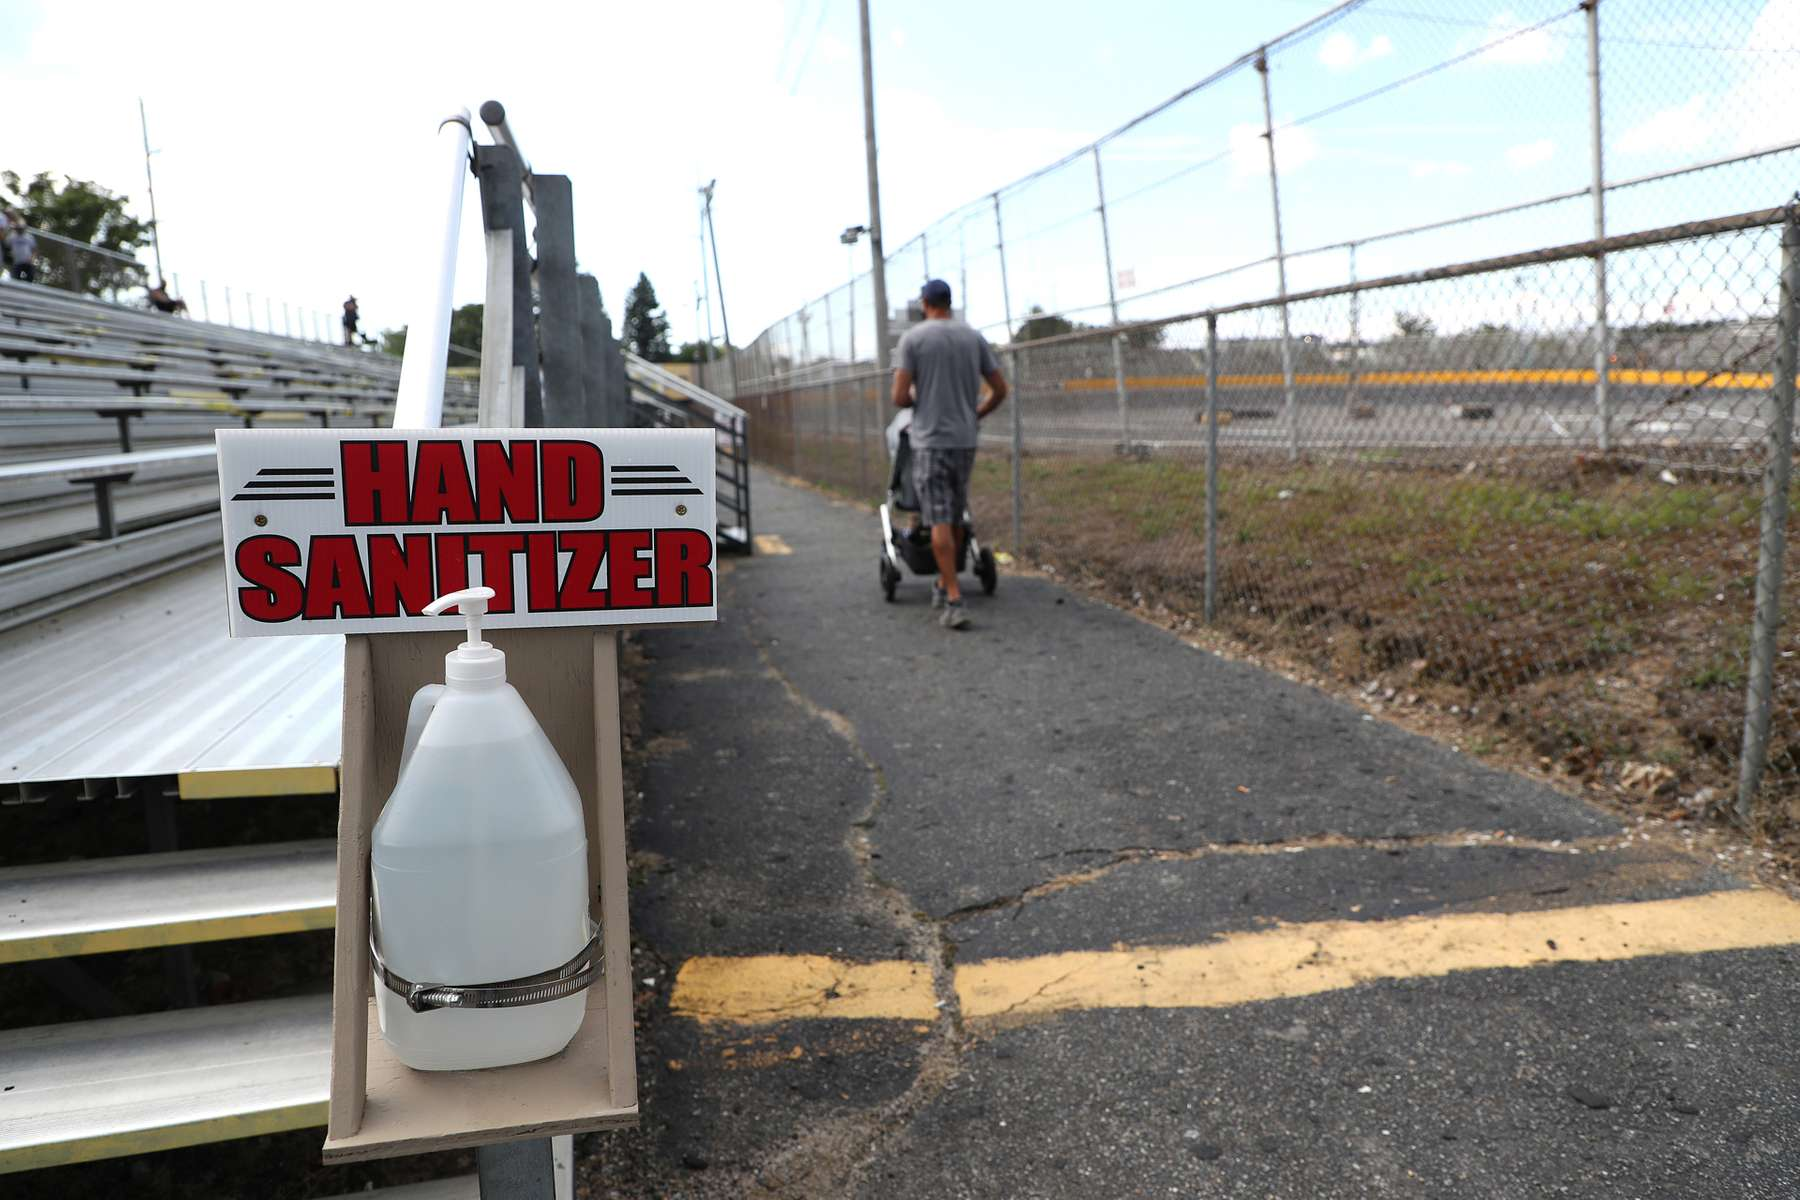 A jug of Hand sanitizer is present in the stands prior to racing during NASCAR Advance Auto Series Opening Night  at Riverhead Raceway on August 01, 2020 in Riverhead, New York.  The race track had been closed due to the coronavirus COVID-19 pandemic.  More than 4,585,258 people in the United States alone have been infected with the coronavirus and at least 154,000 have died.